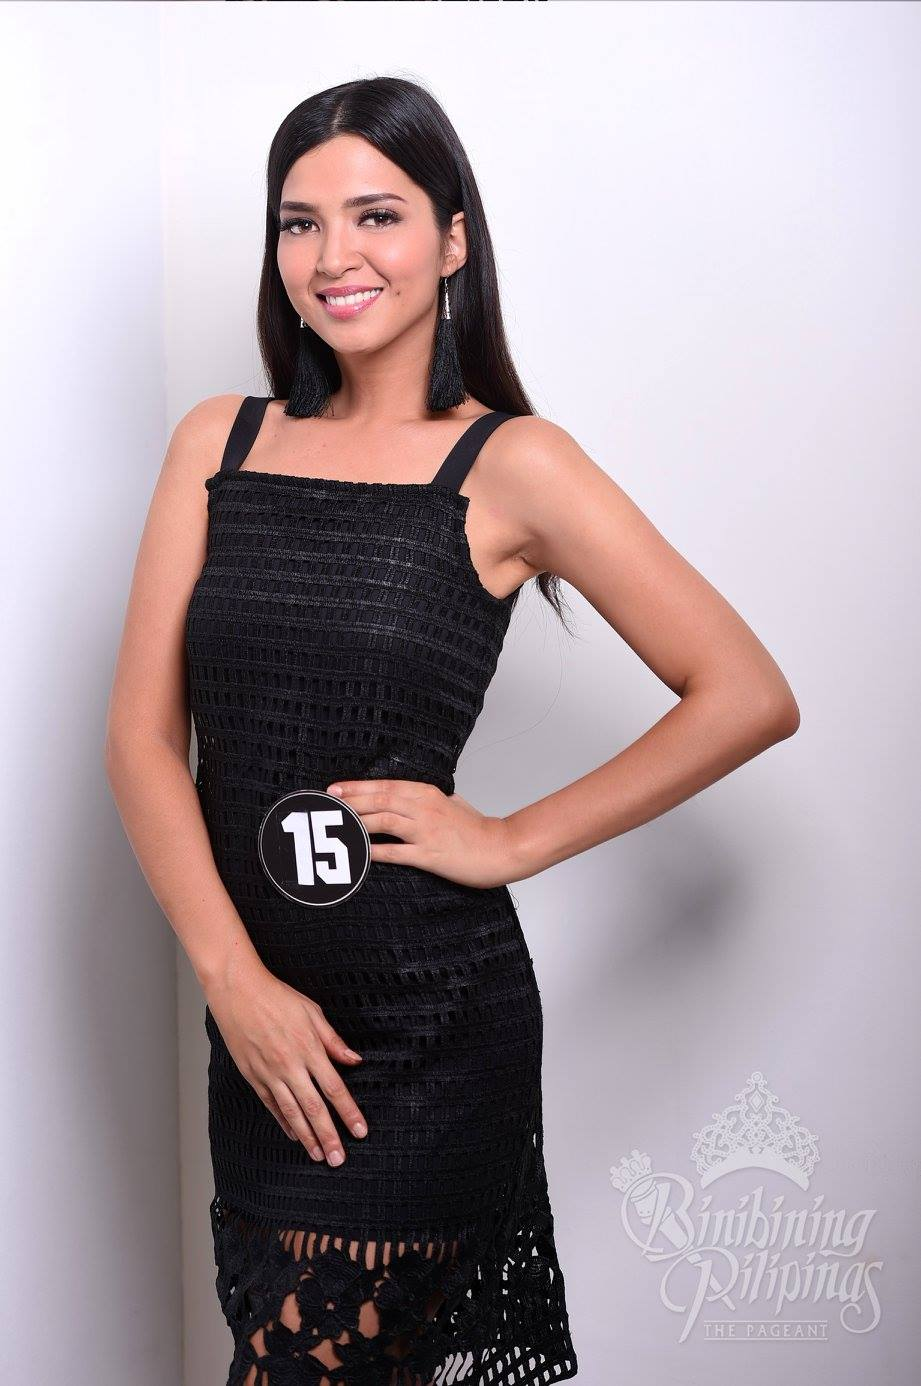 Juliana Kapuendl in an official photo for Bb Pilipinas 2018. Photo courtesy of Bb Pilipinas